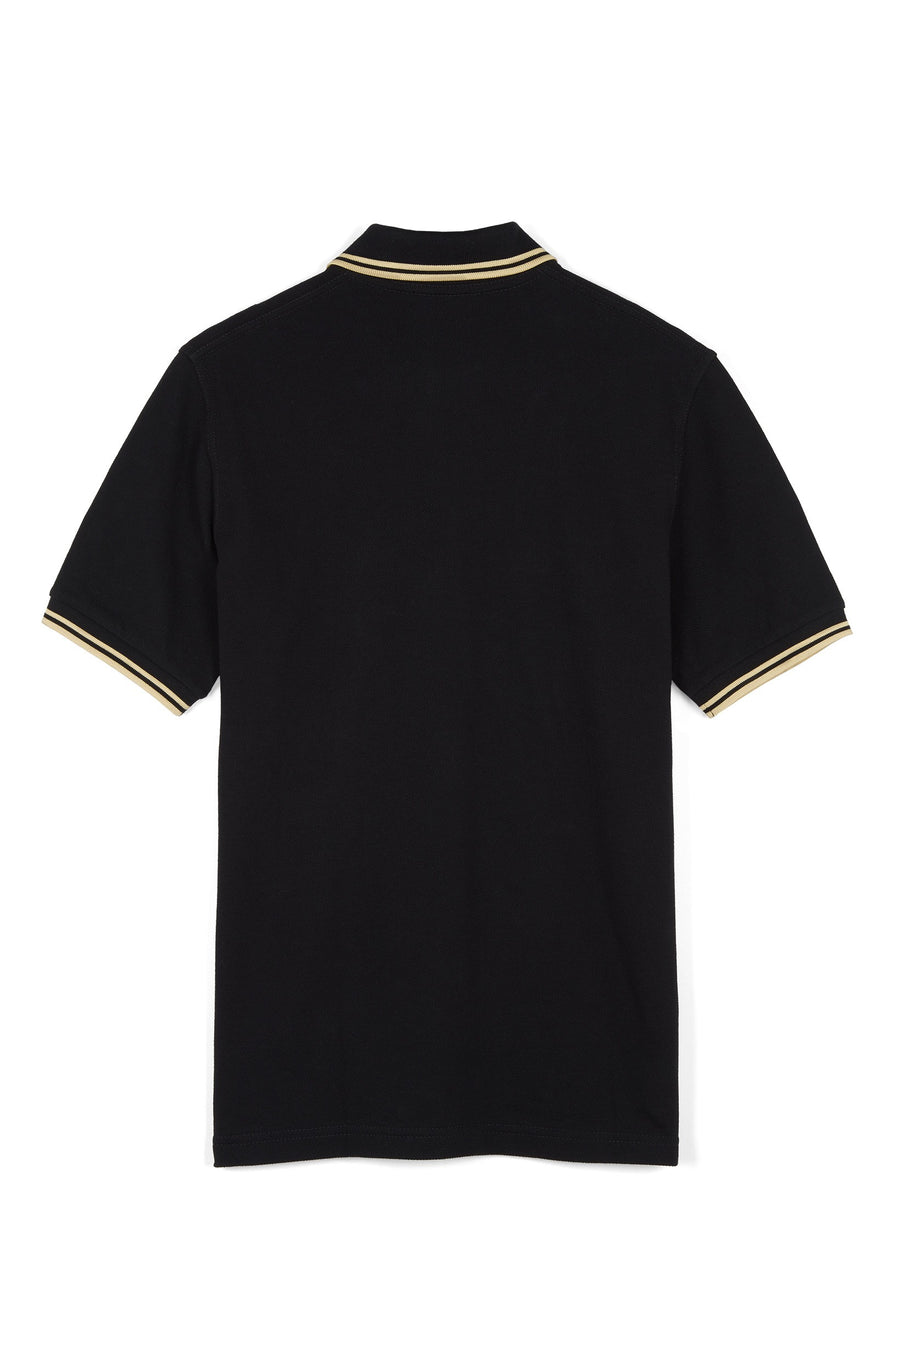 Fred Perry Twin Tipped M12 Polo Shirt - Black/Champagne